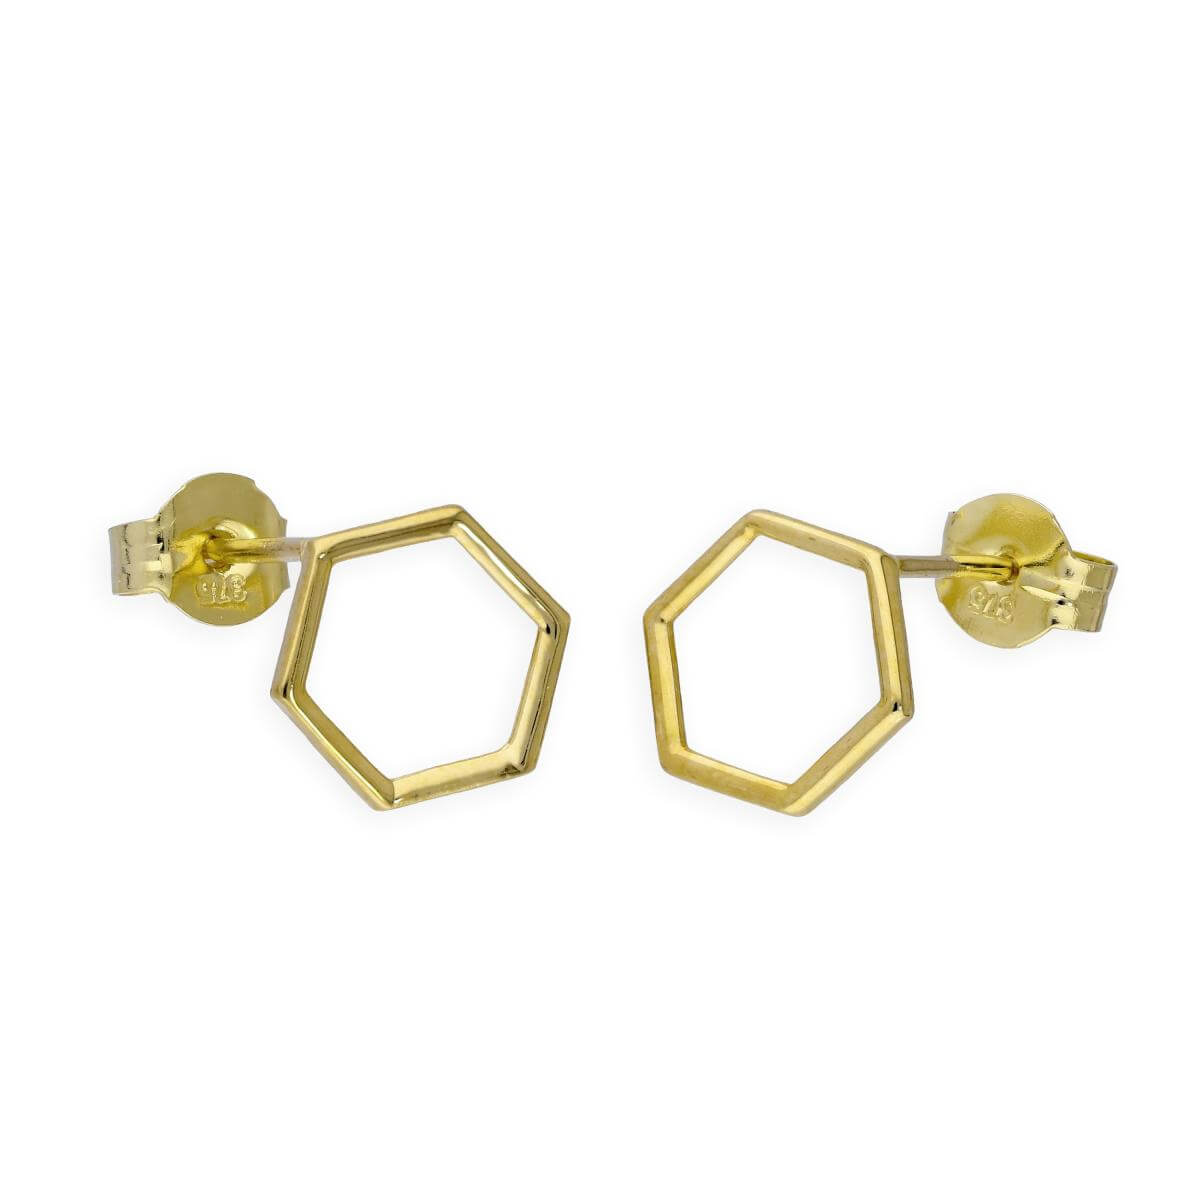 9ct Gold 8mm Open Hexagon Stud Earrings